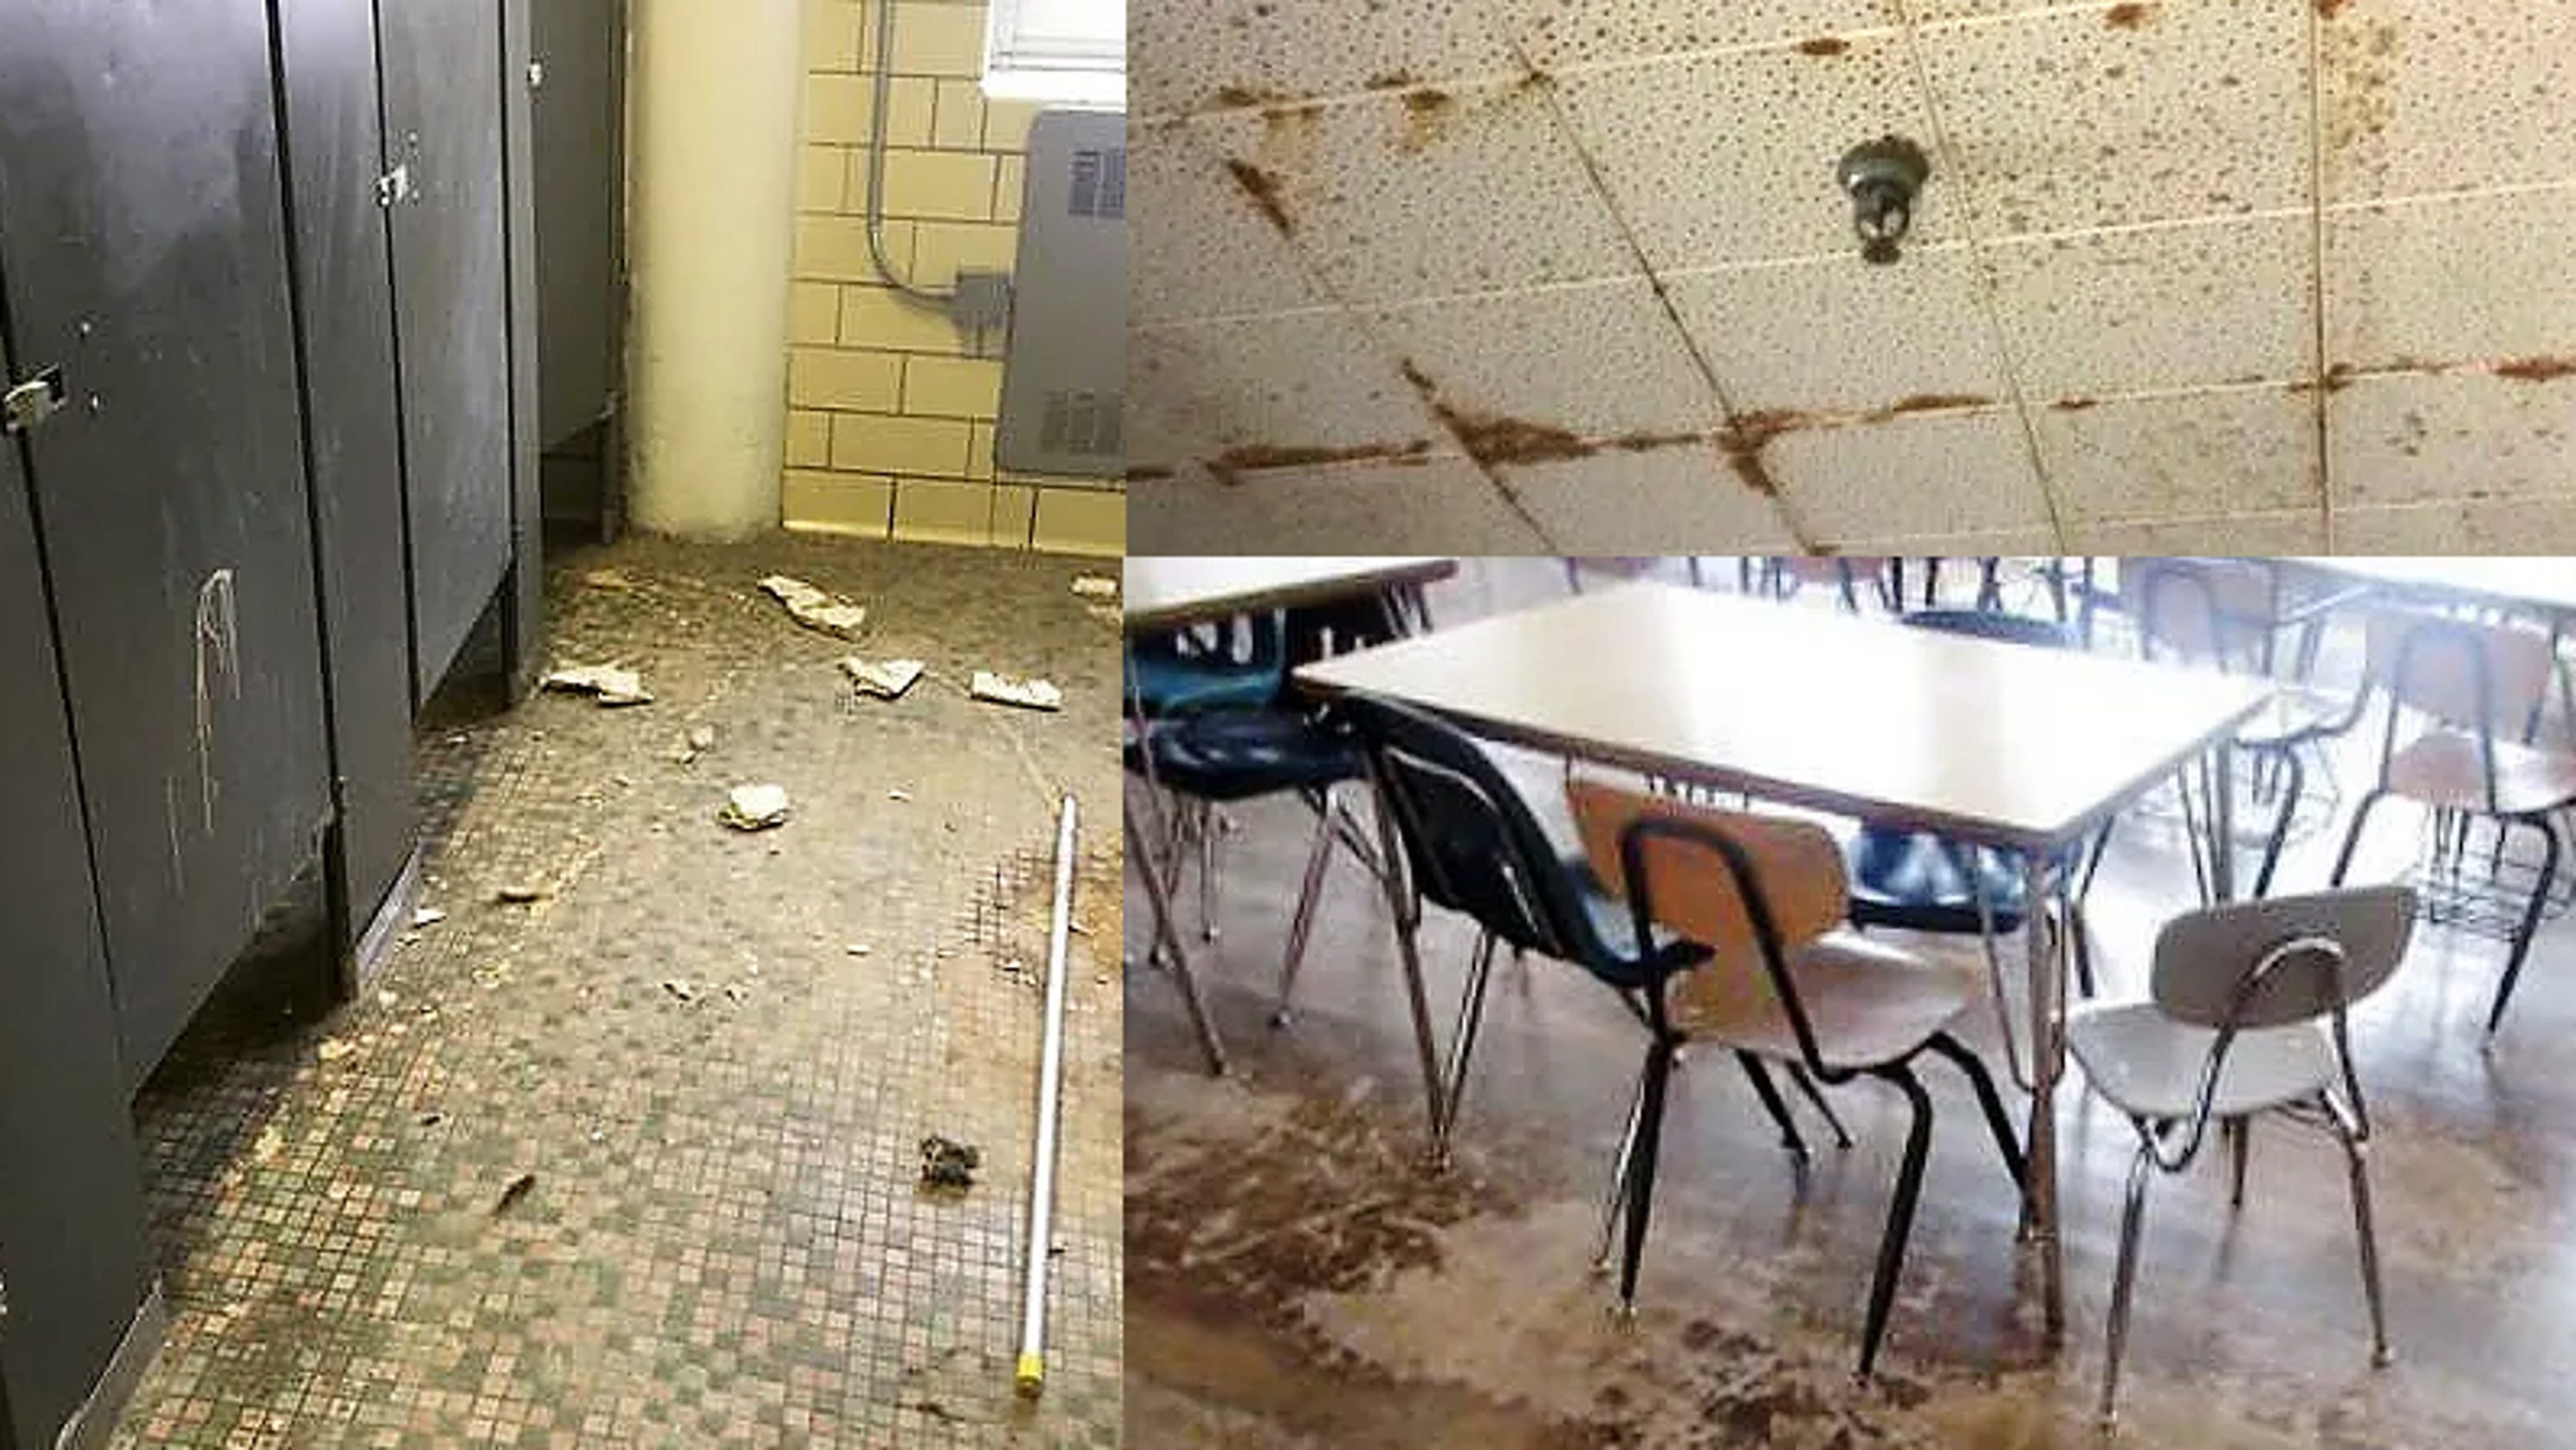 Detroit schools face tough choices with too many repairs